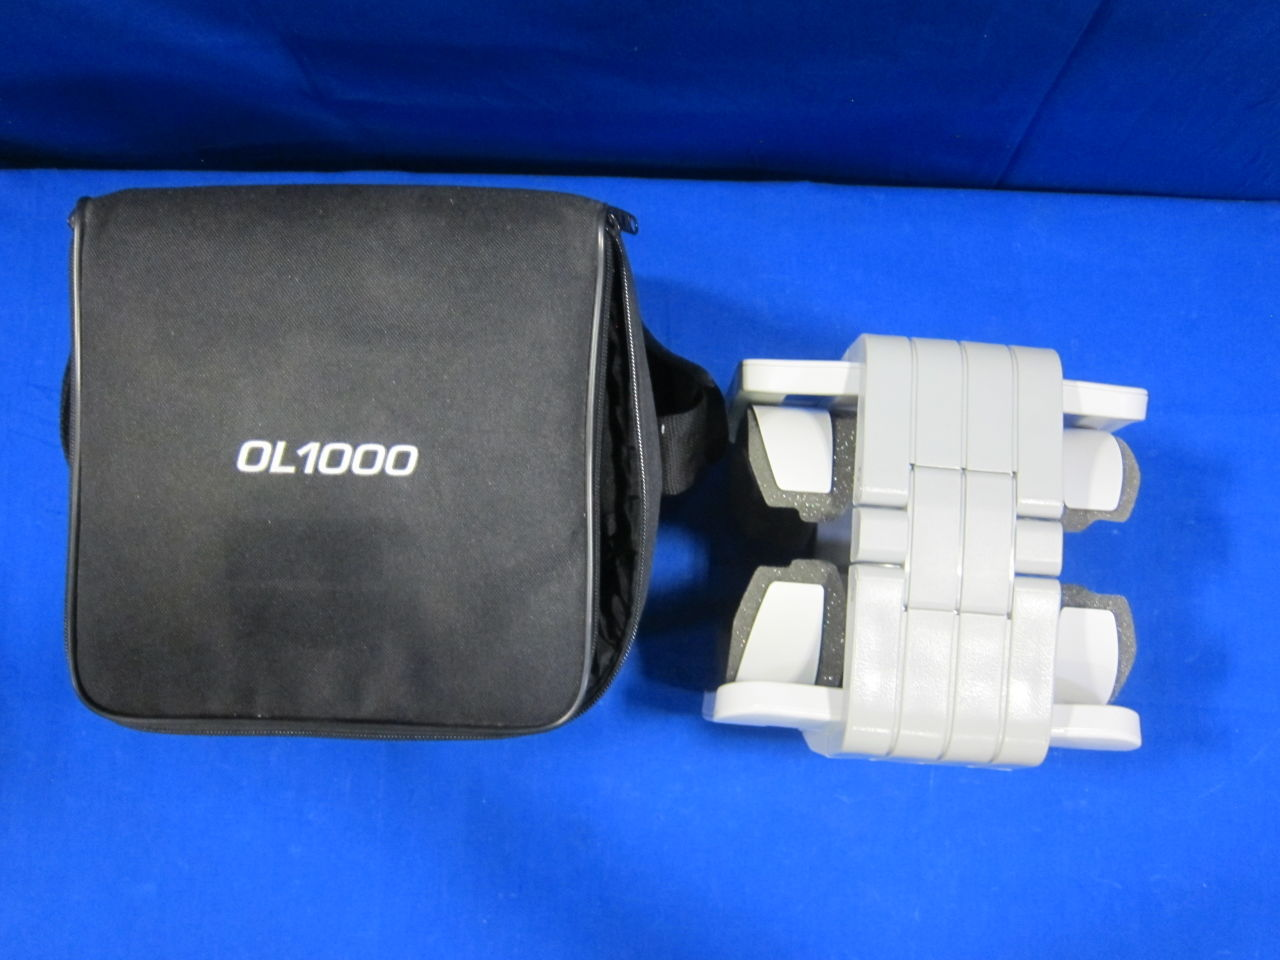 REGENTEK OL1000 Bone Growth Stimulator